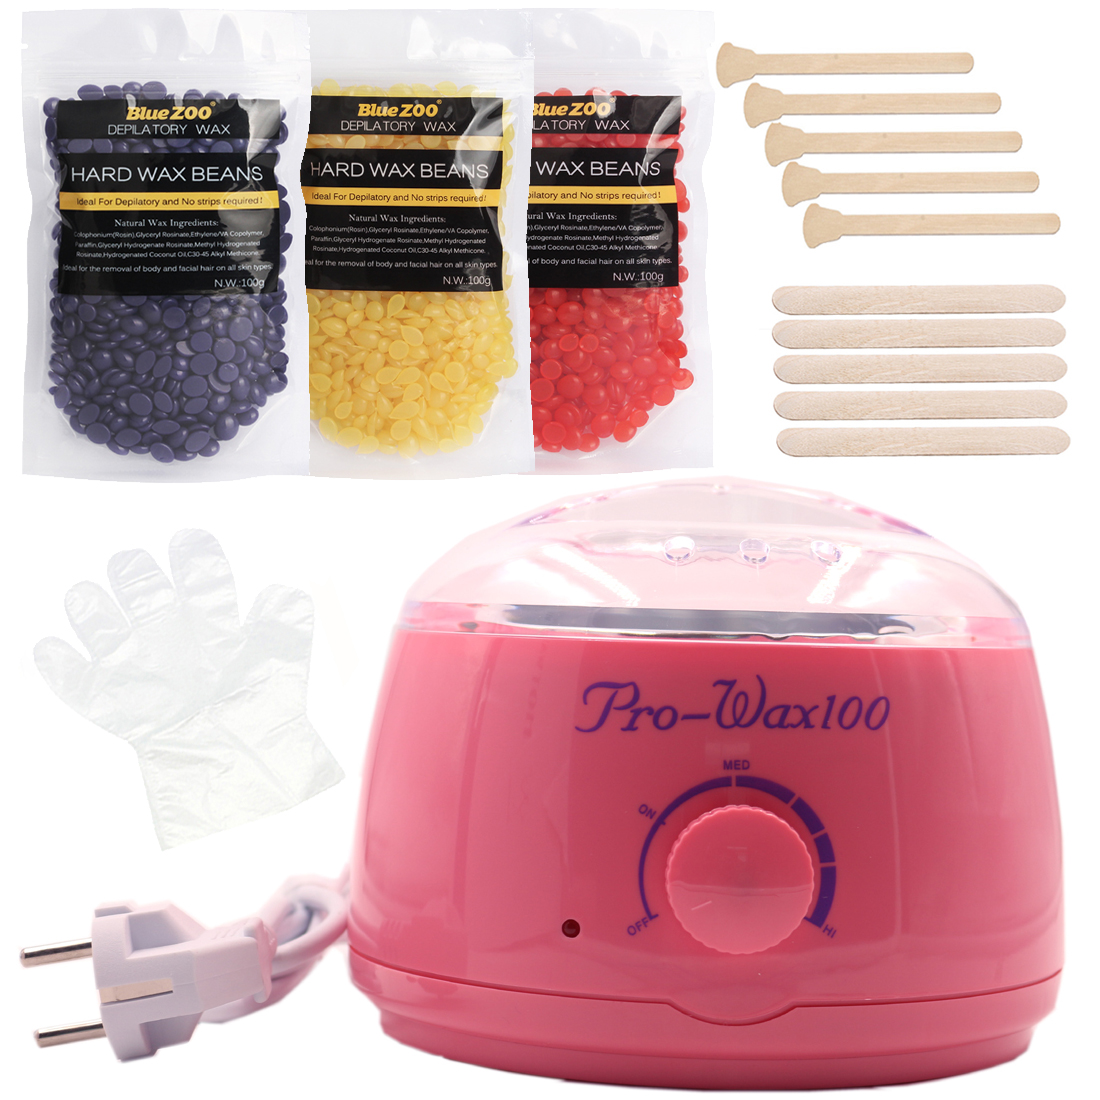 Brazilian Depilatory Wax Set Hot Hard Wax Beans Epilation Natural Pearl Wax Heater For Bikini Body And Face Hair Removal depilatory wax warmer hard wax beans hair removal black wax machine 250g natural beans for beauty spa epilation